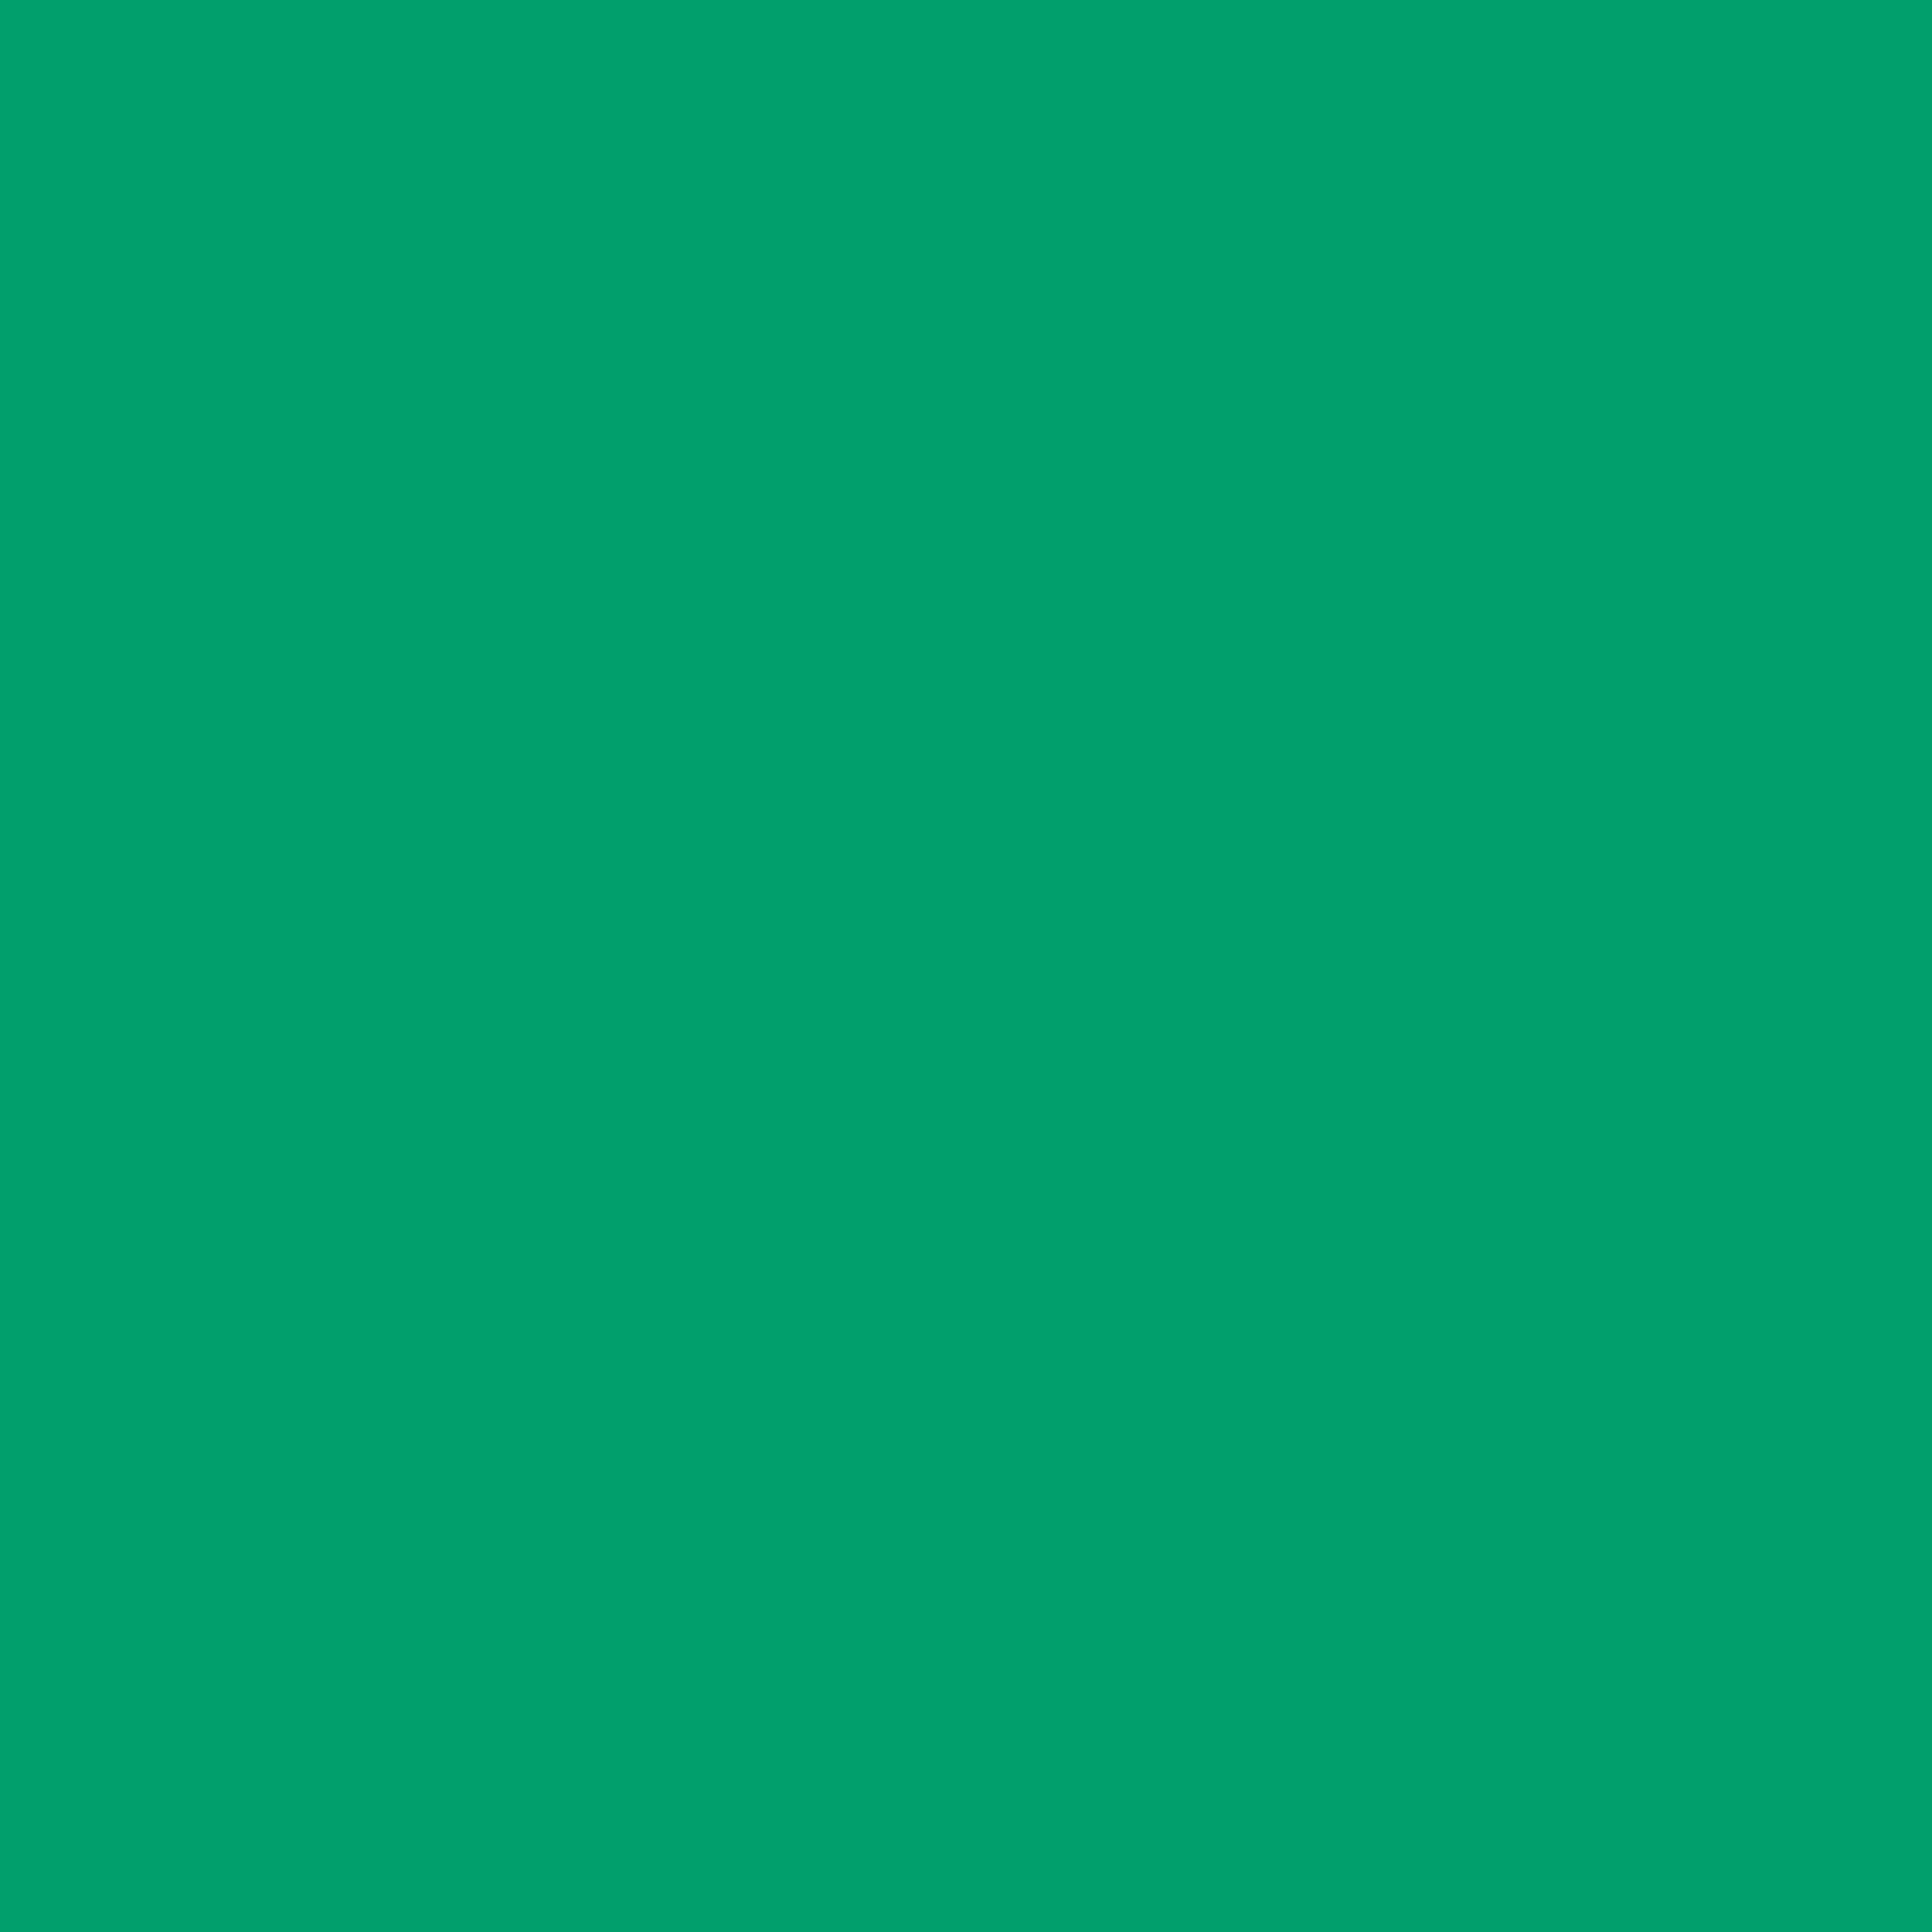 2732x2732 Green NCS Solid Color Background